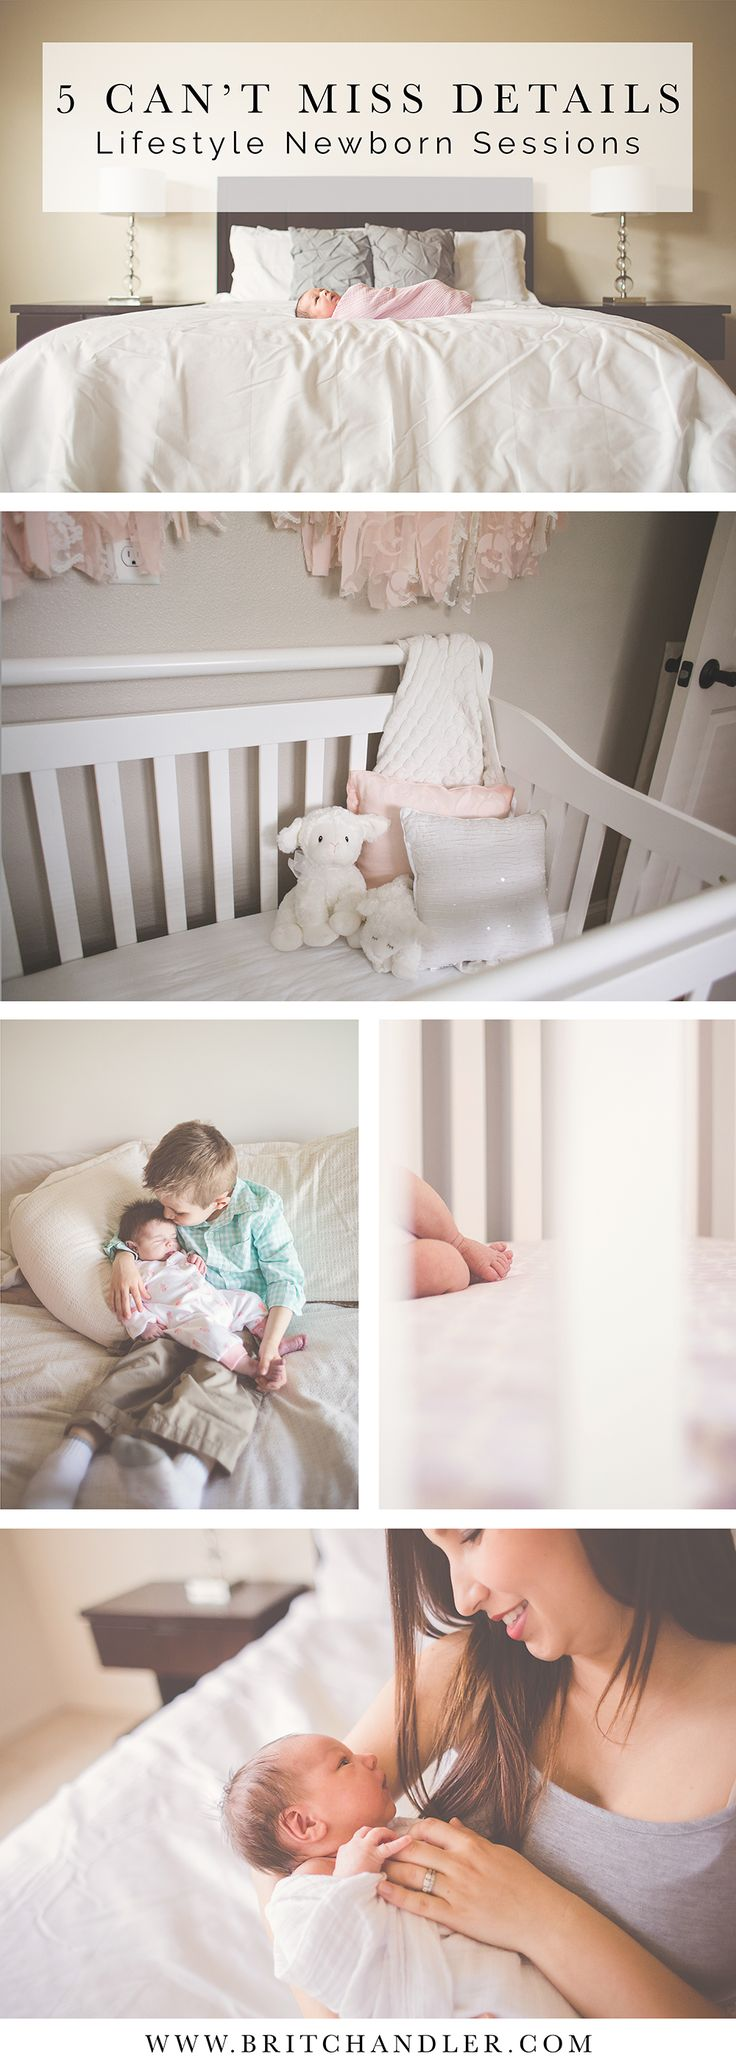 5 Can't Miss Details for Lifestyle Newborn Sessions. Tips, tutorials, posing for lifestyle photography.